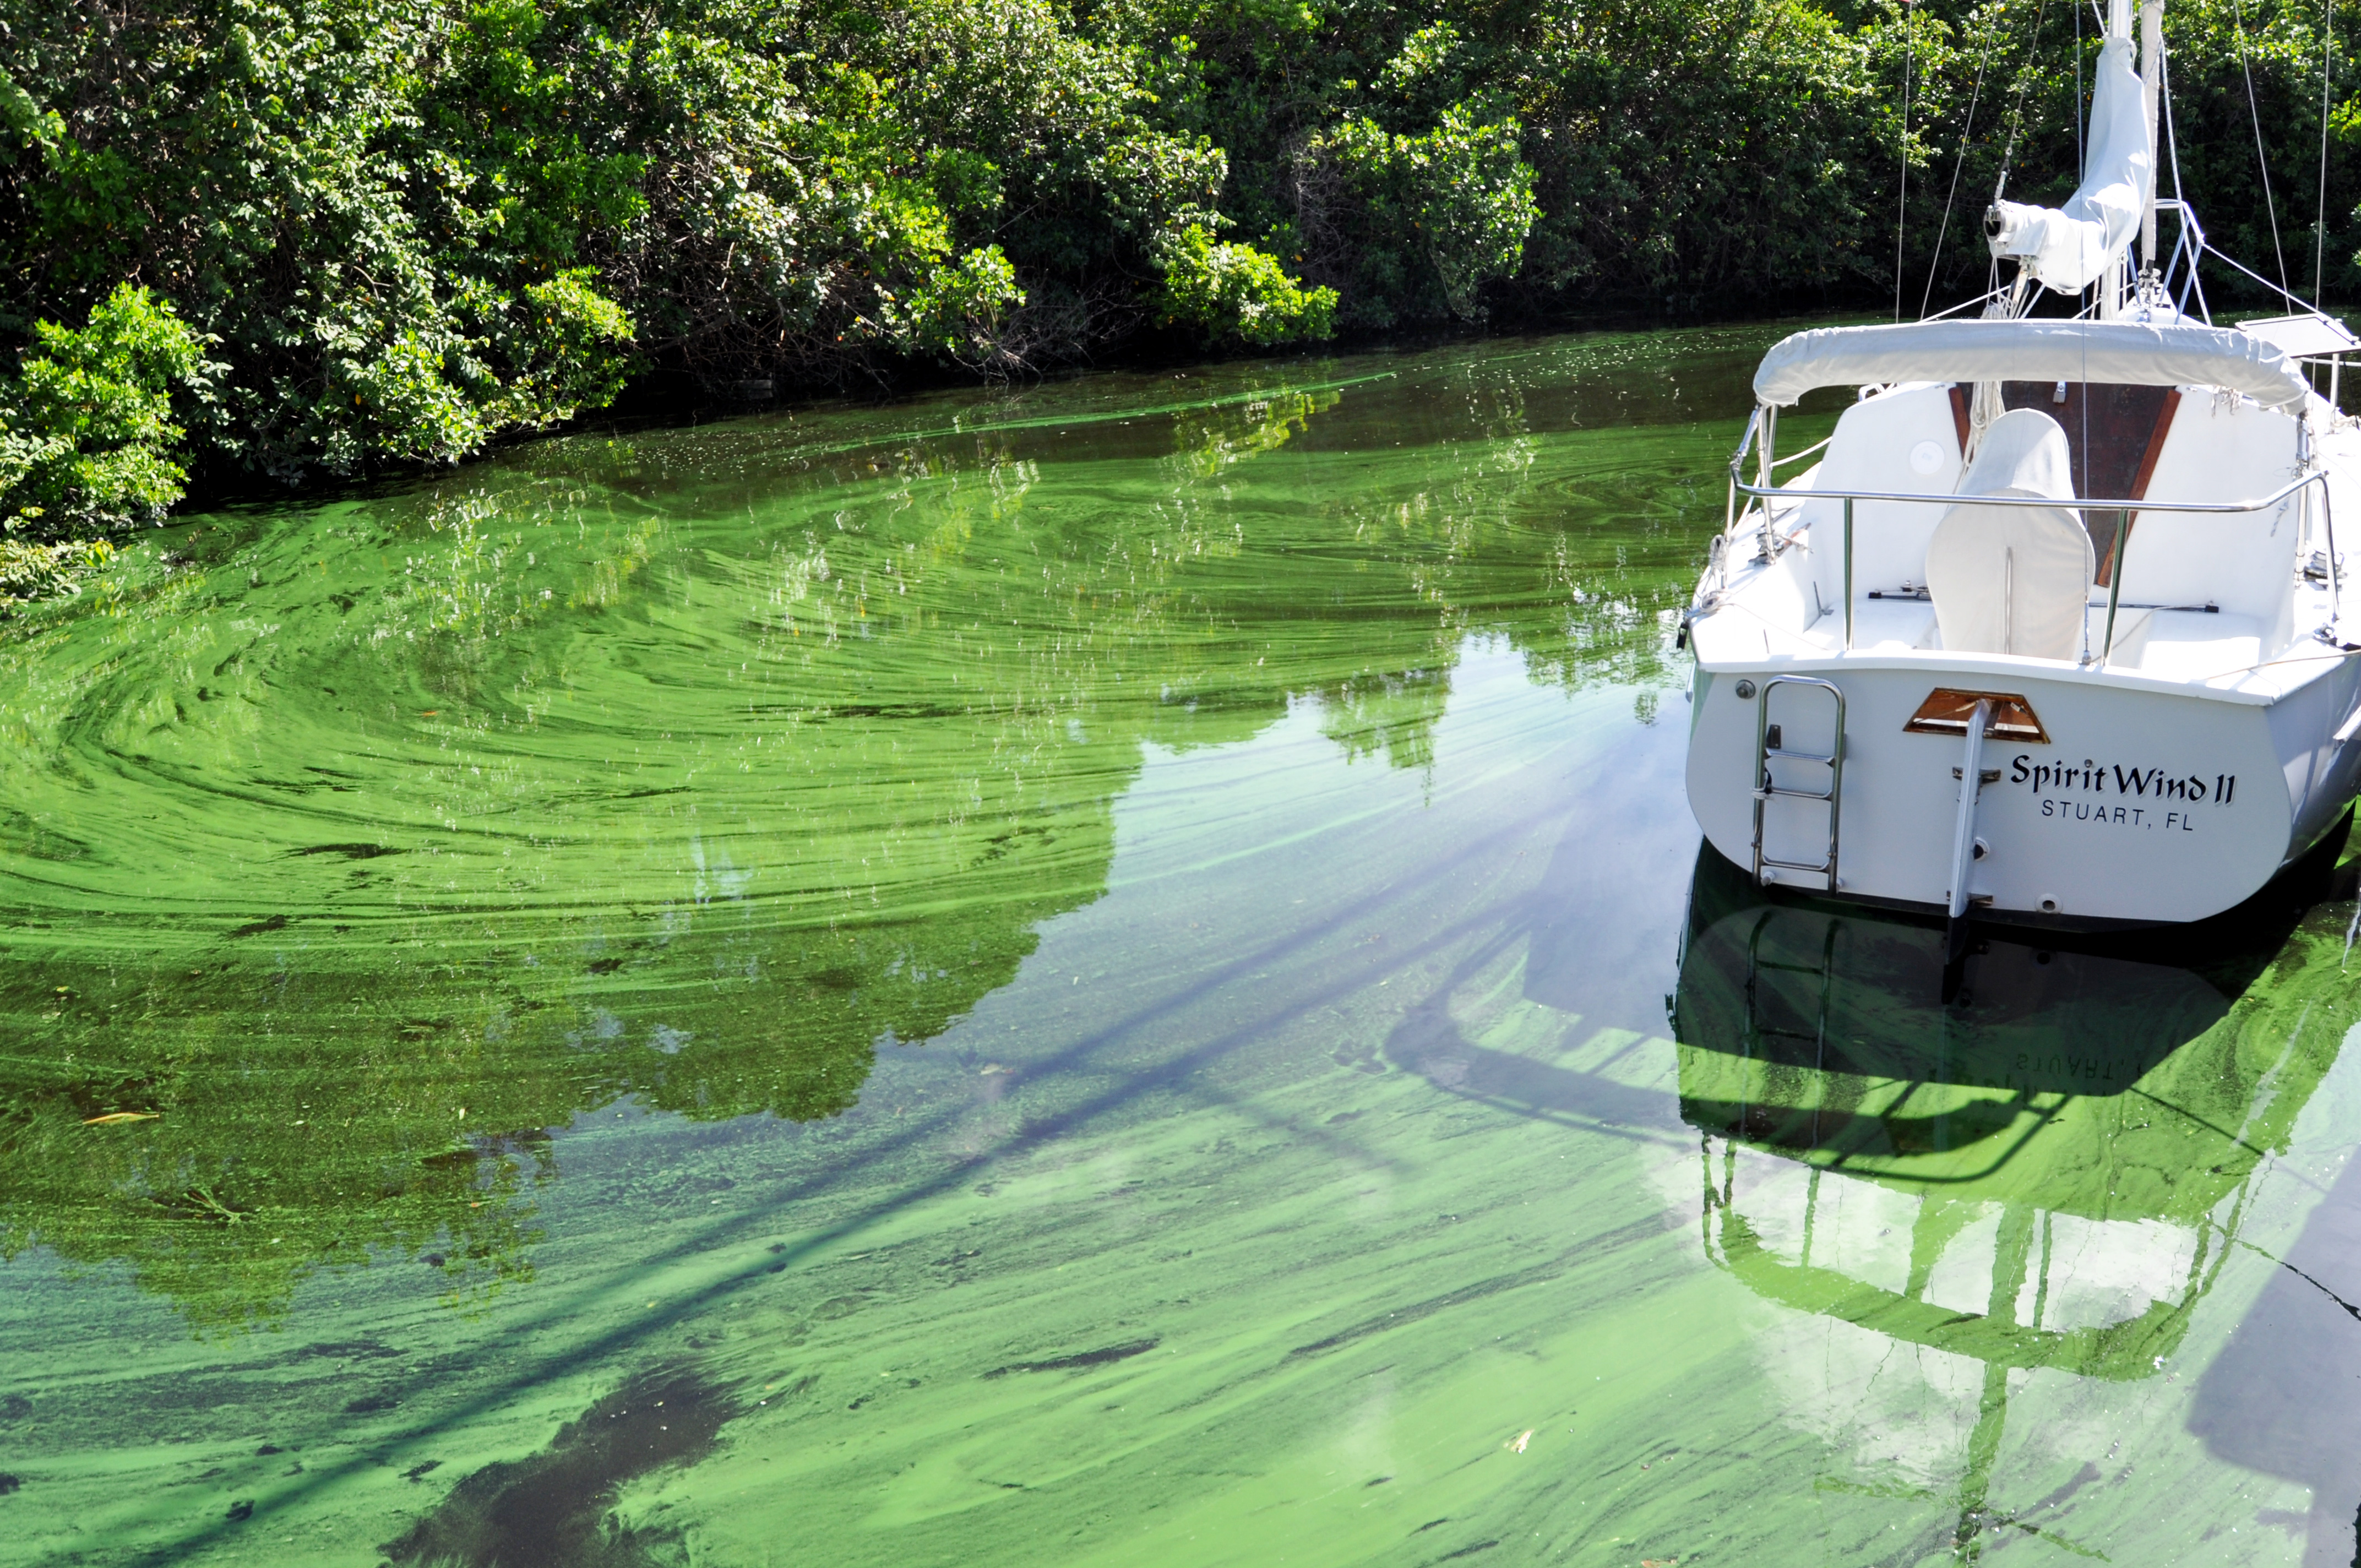 Microcystis in the Indian River Lagoon